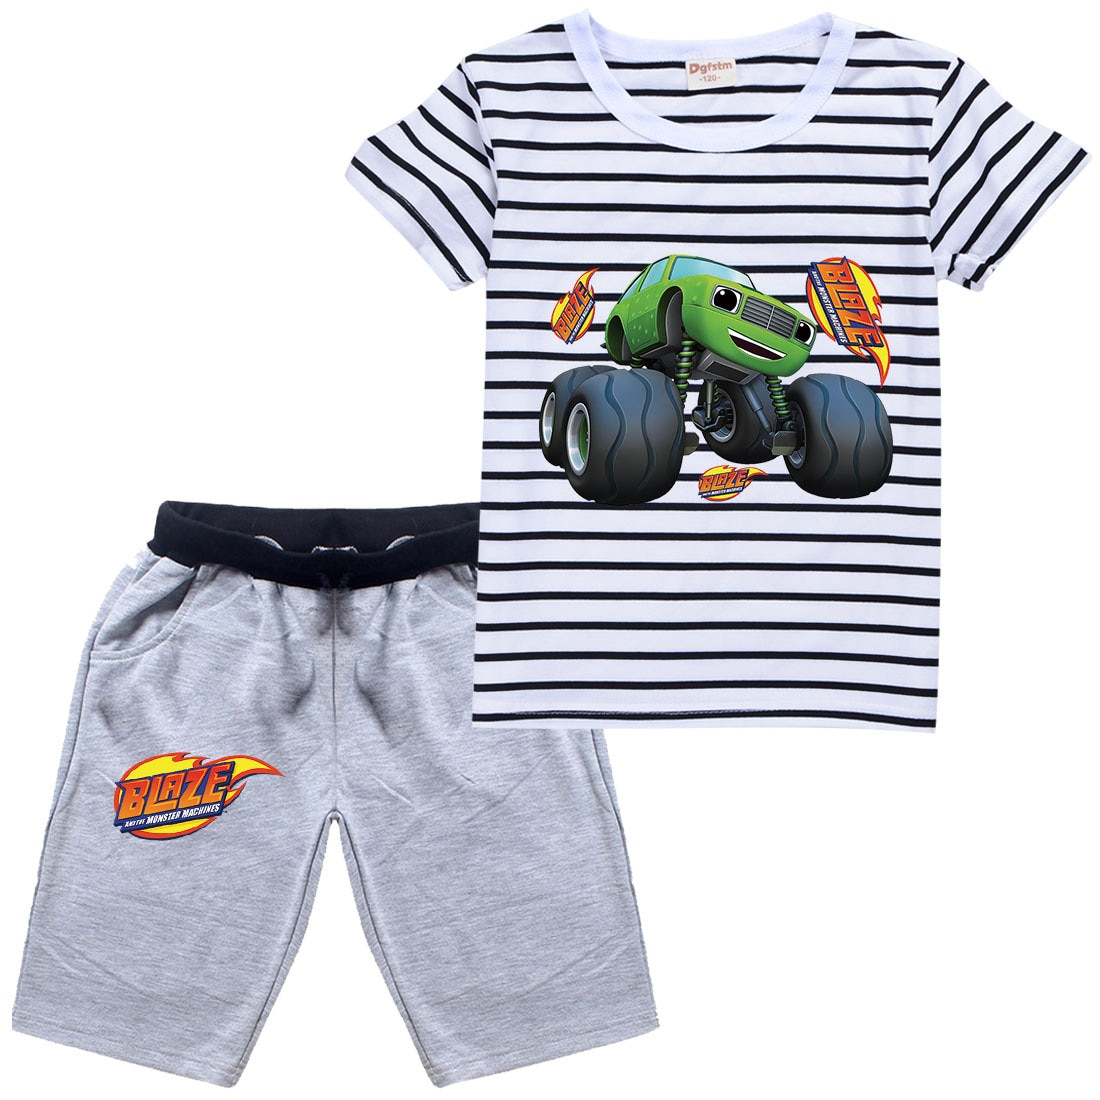 Blaze and The Monster Machines Boy Kids Boutique Clothing Wholesale Cotton Girls Short Sleeve T Shirt Shorts Suit Baby Tracksuit